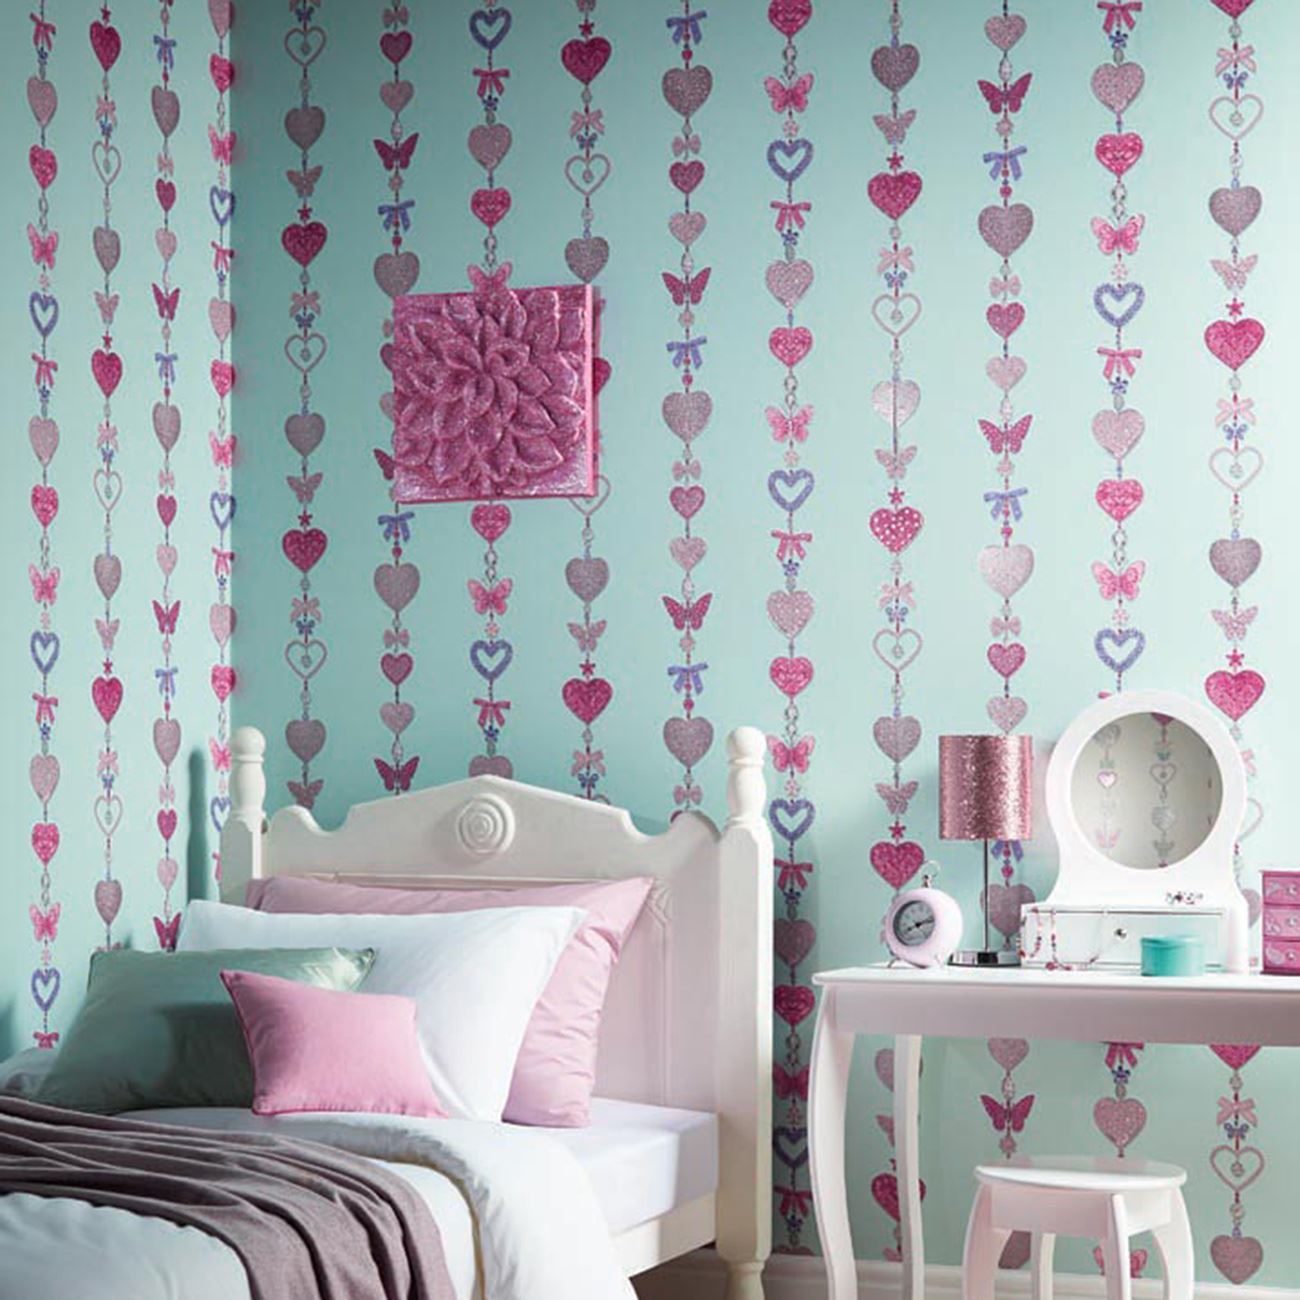 GIRLS WALLPAPER THEMED BEDROOM UNICORN STARS HEART GLITTER ...